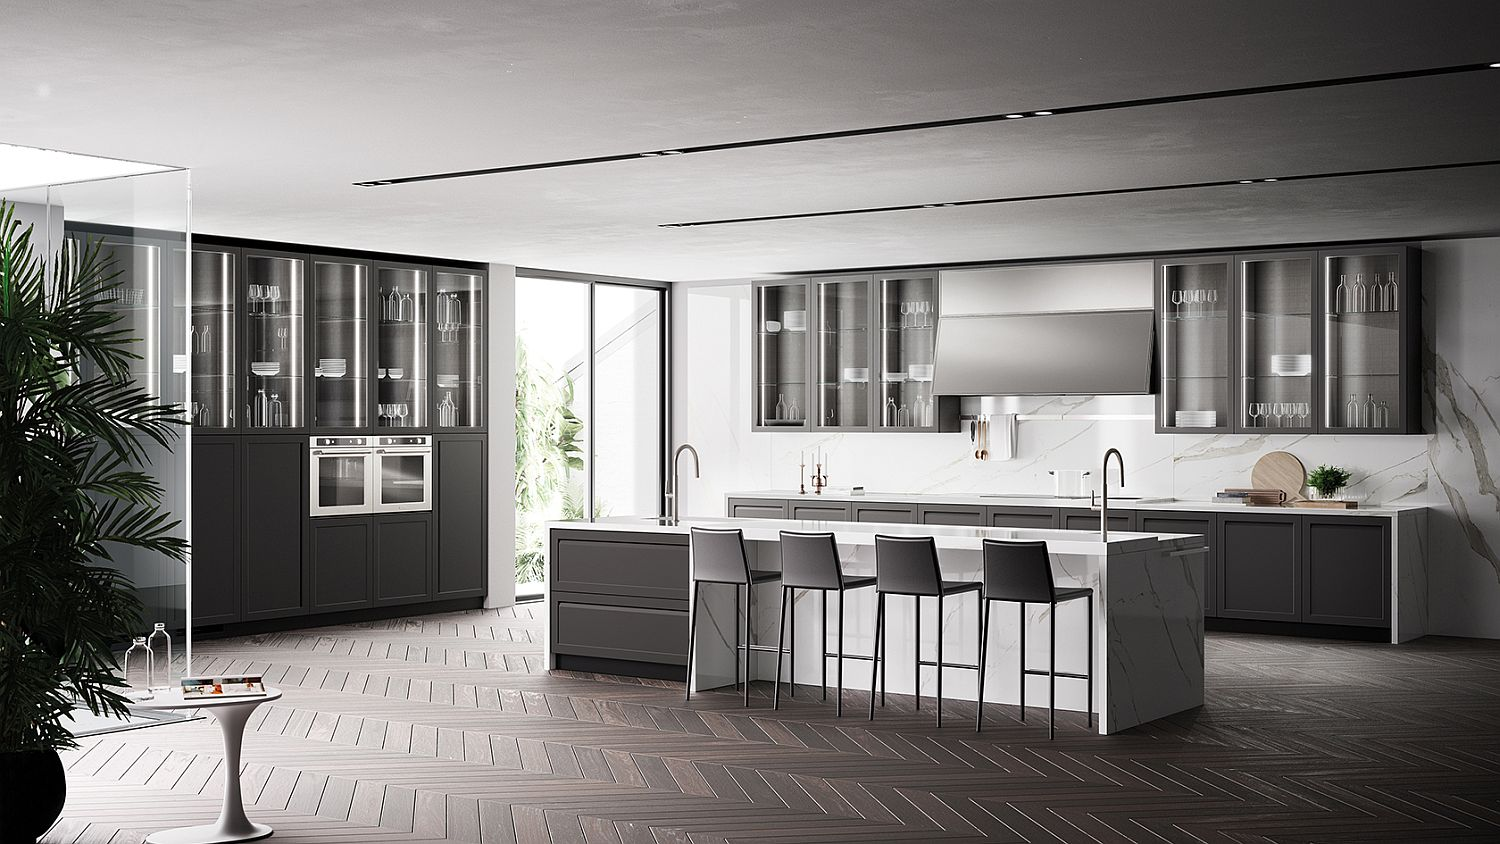 Carattere ClassicalContemporary Kitchen Blends Sophistication